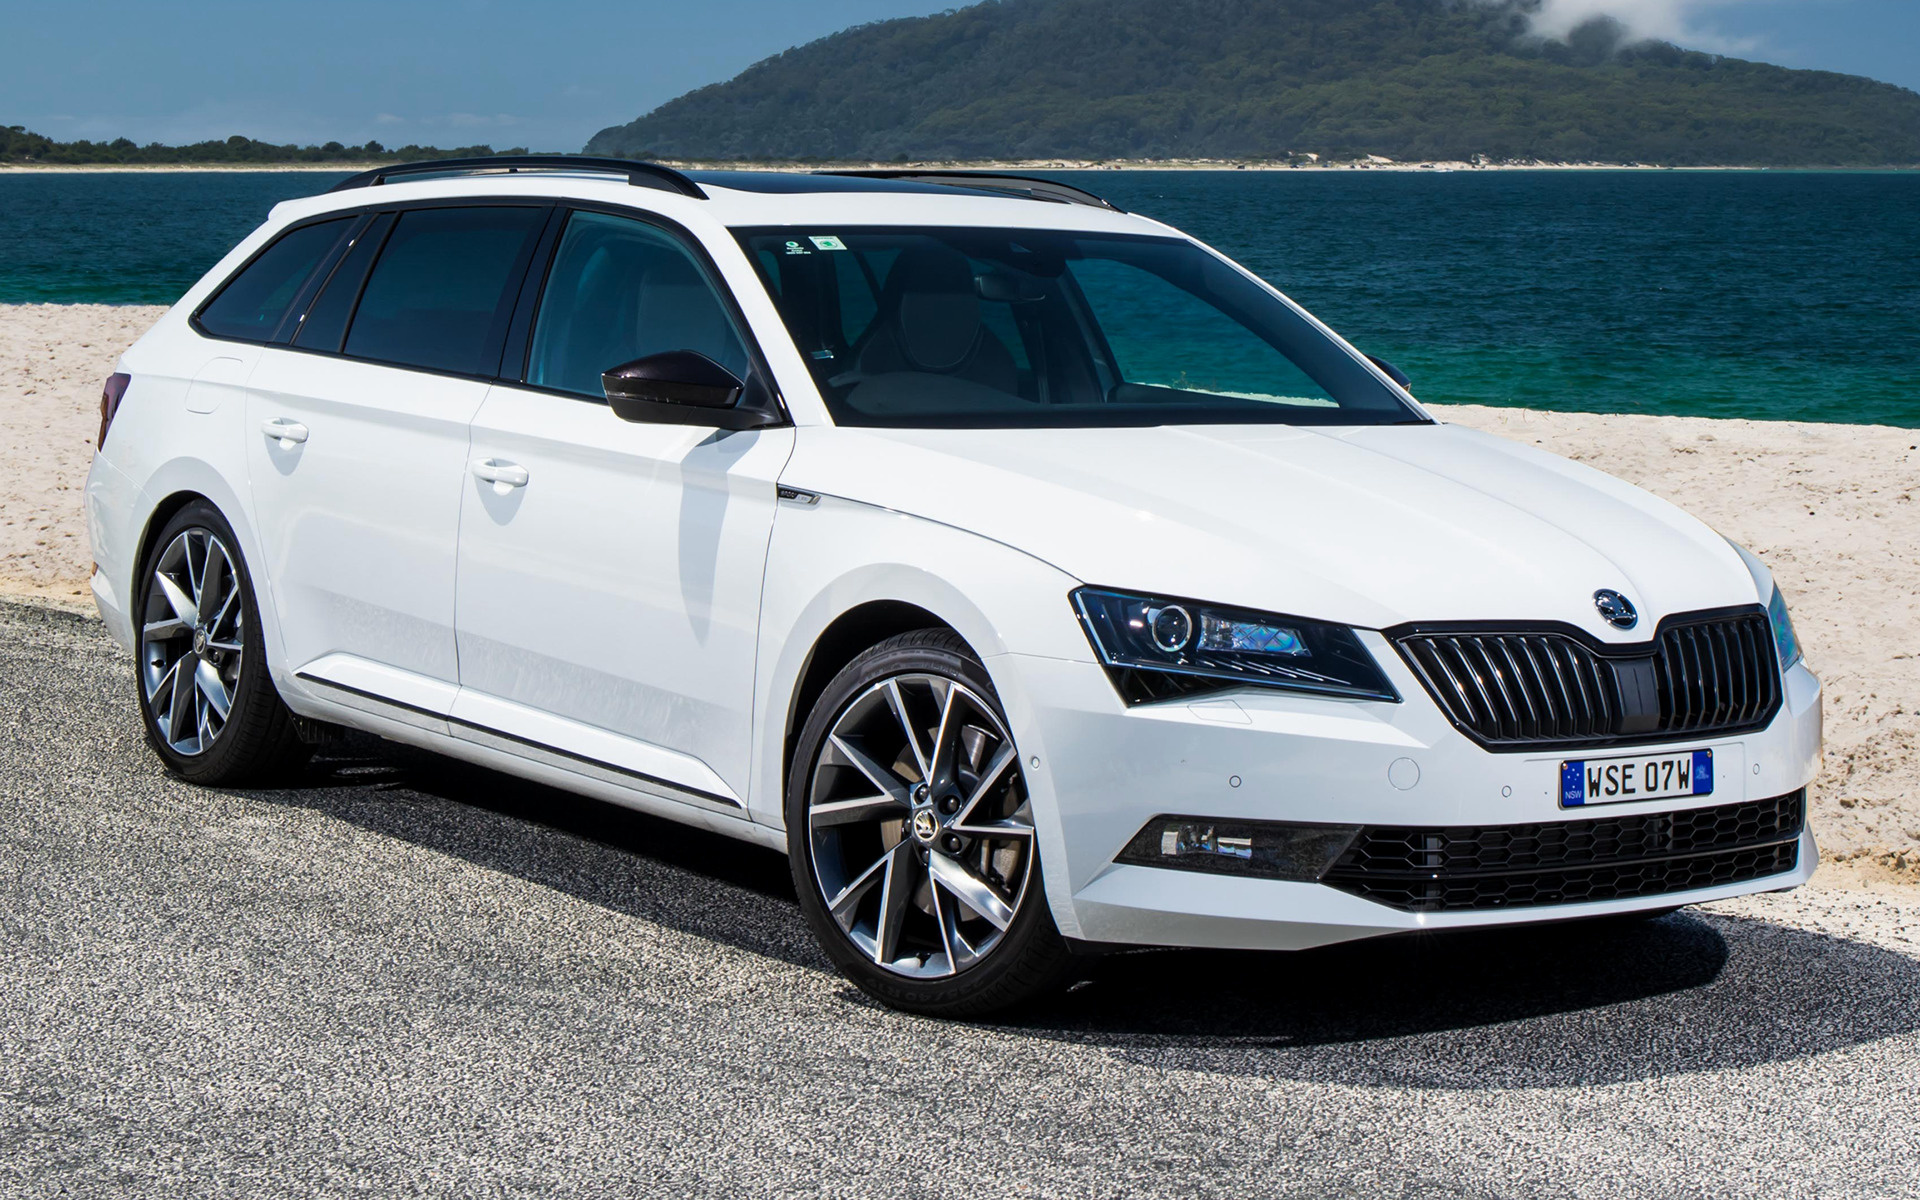 skoda superb wagon sportline 2017 au wallpapers and hd images car pixel. Black Bedroom Furniture Sets. Home Design Ideas